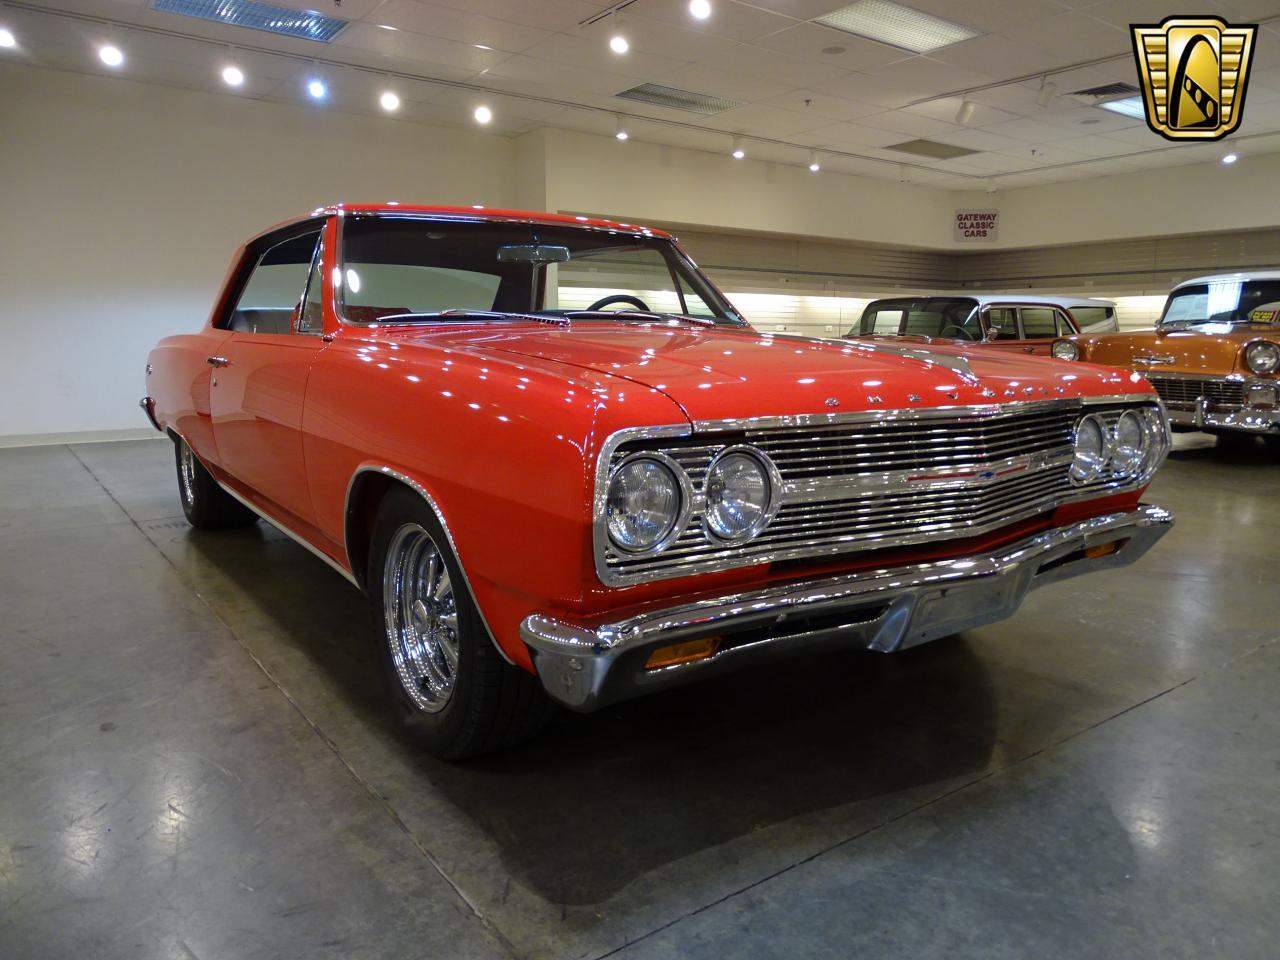 Large Picture of Classic '65 Chevrolet Chevelle located in O'Fallon Illinois - $123,000.00 - KE3S